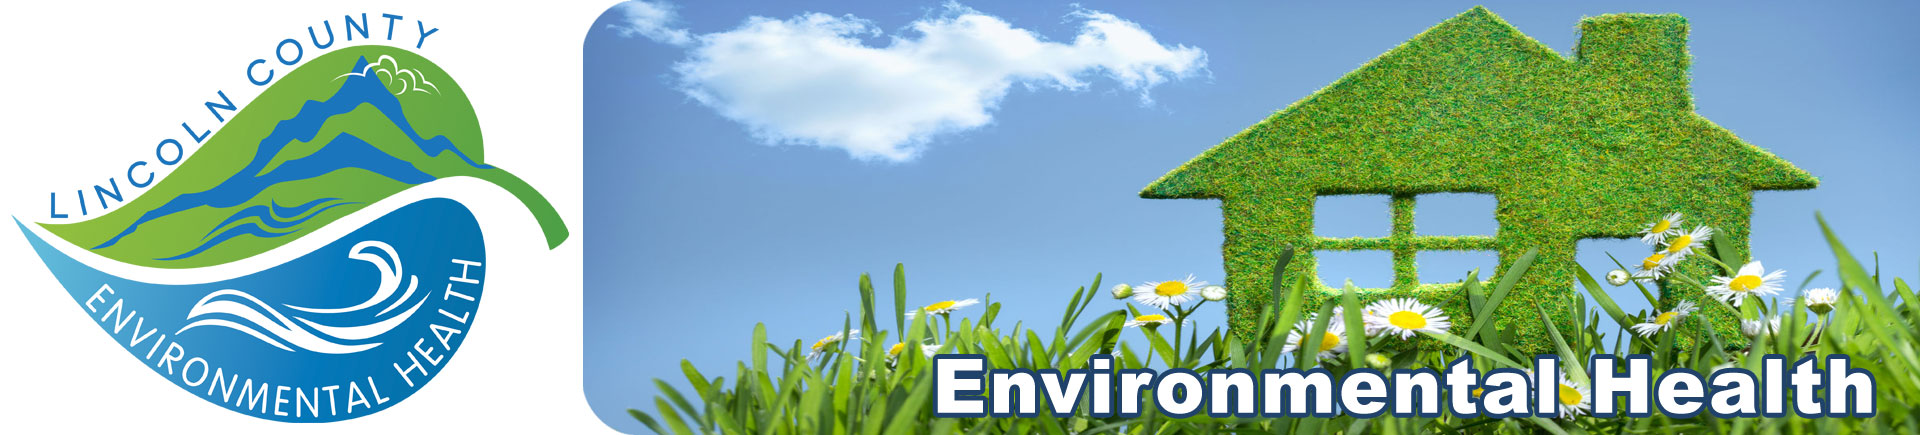 Lincoln County Environmental Health